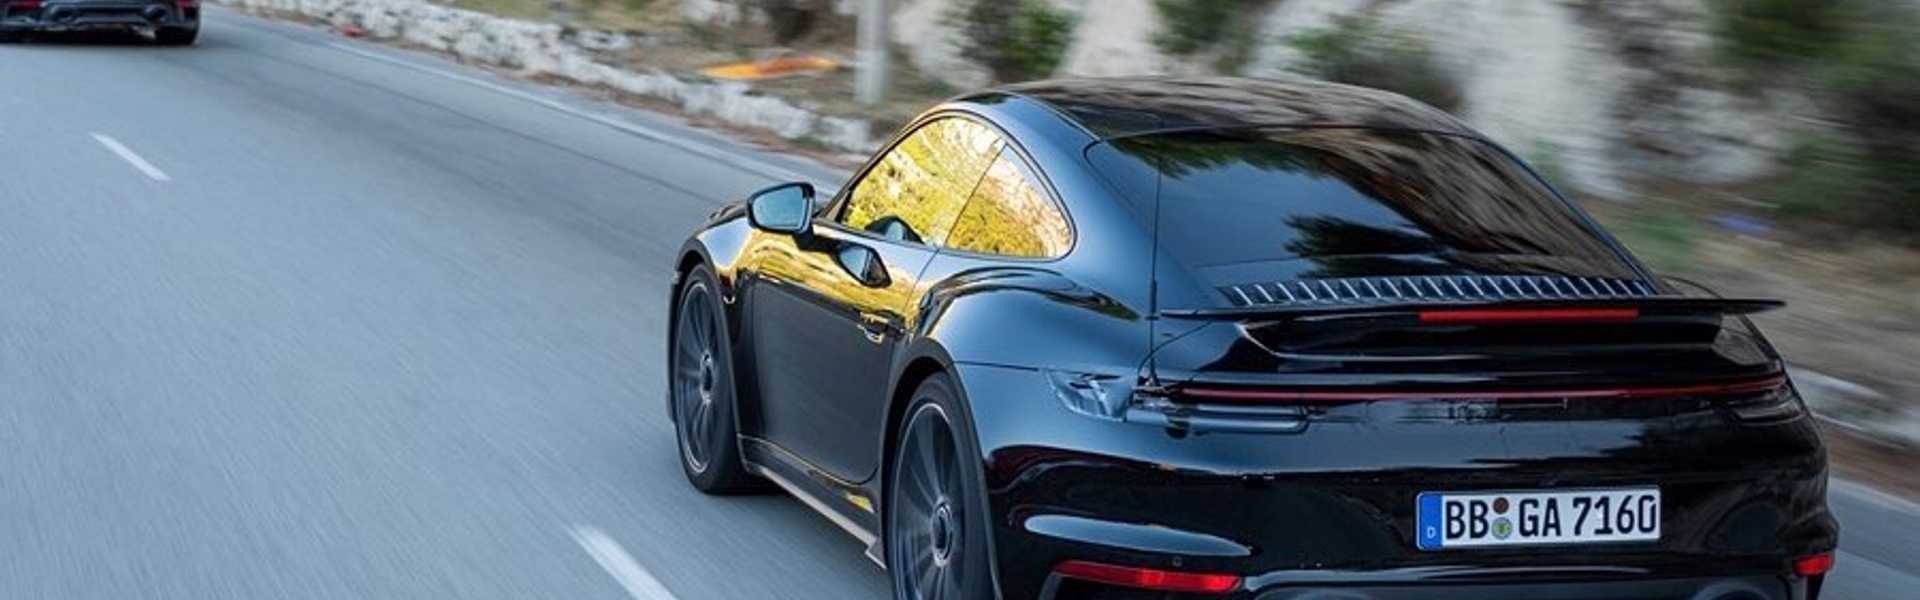 992-porsche-911-turbo-prototypes-from-instagram.jpg